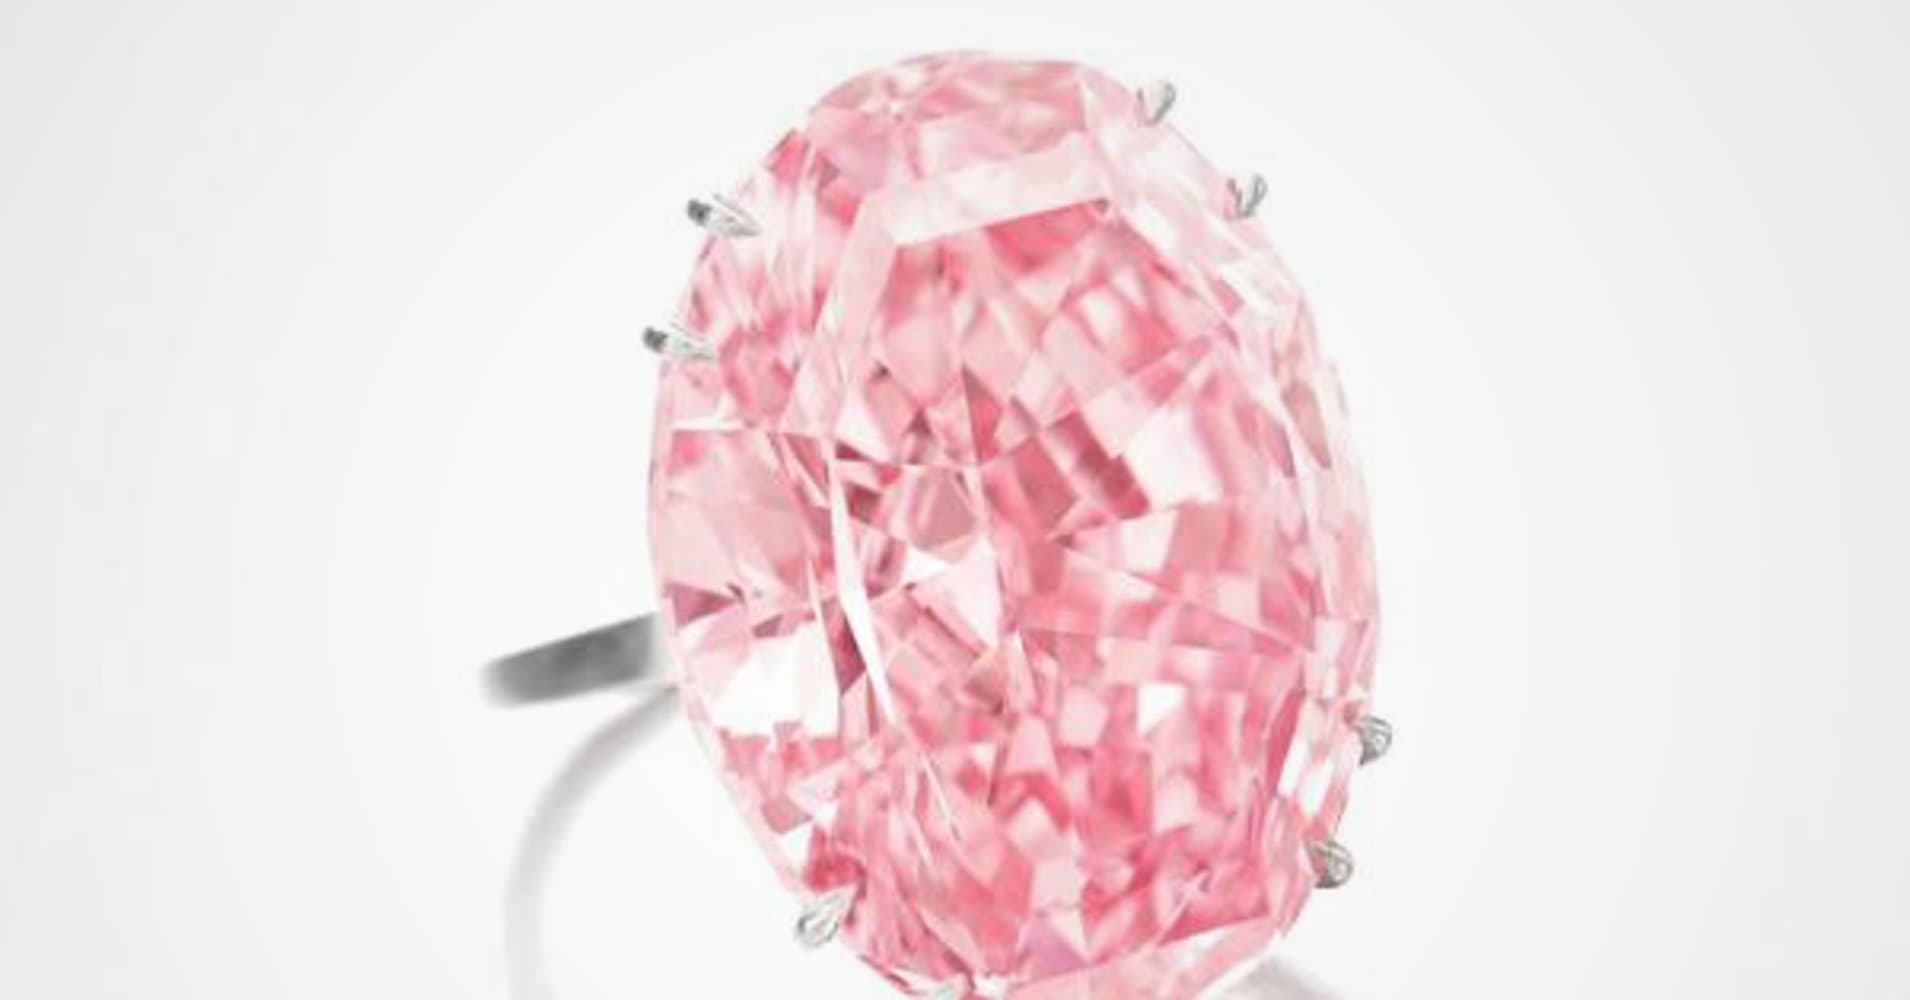 Most expensive diamond ever sold goes for $83.2M